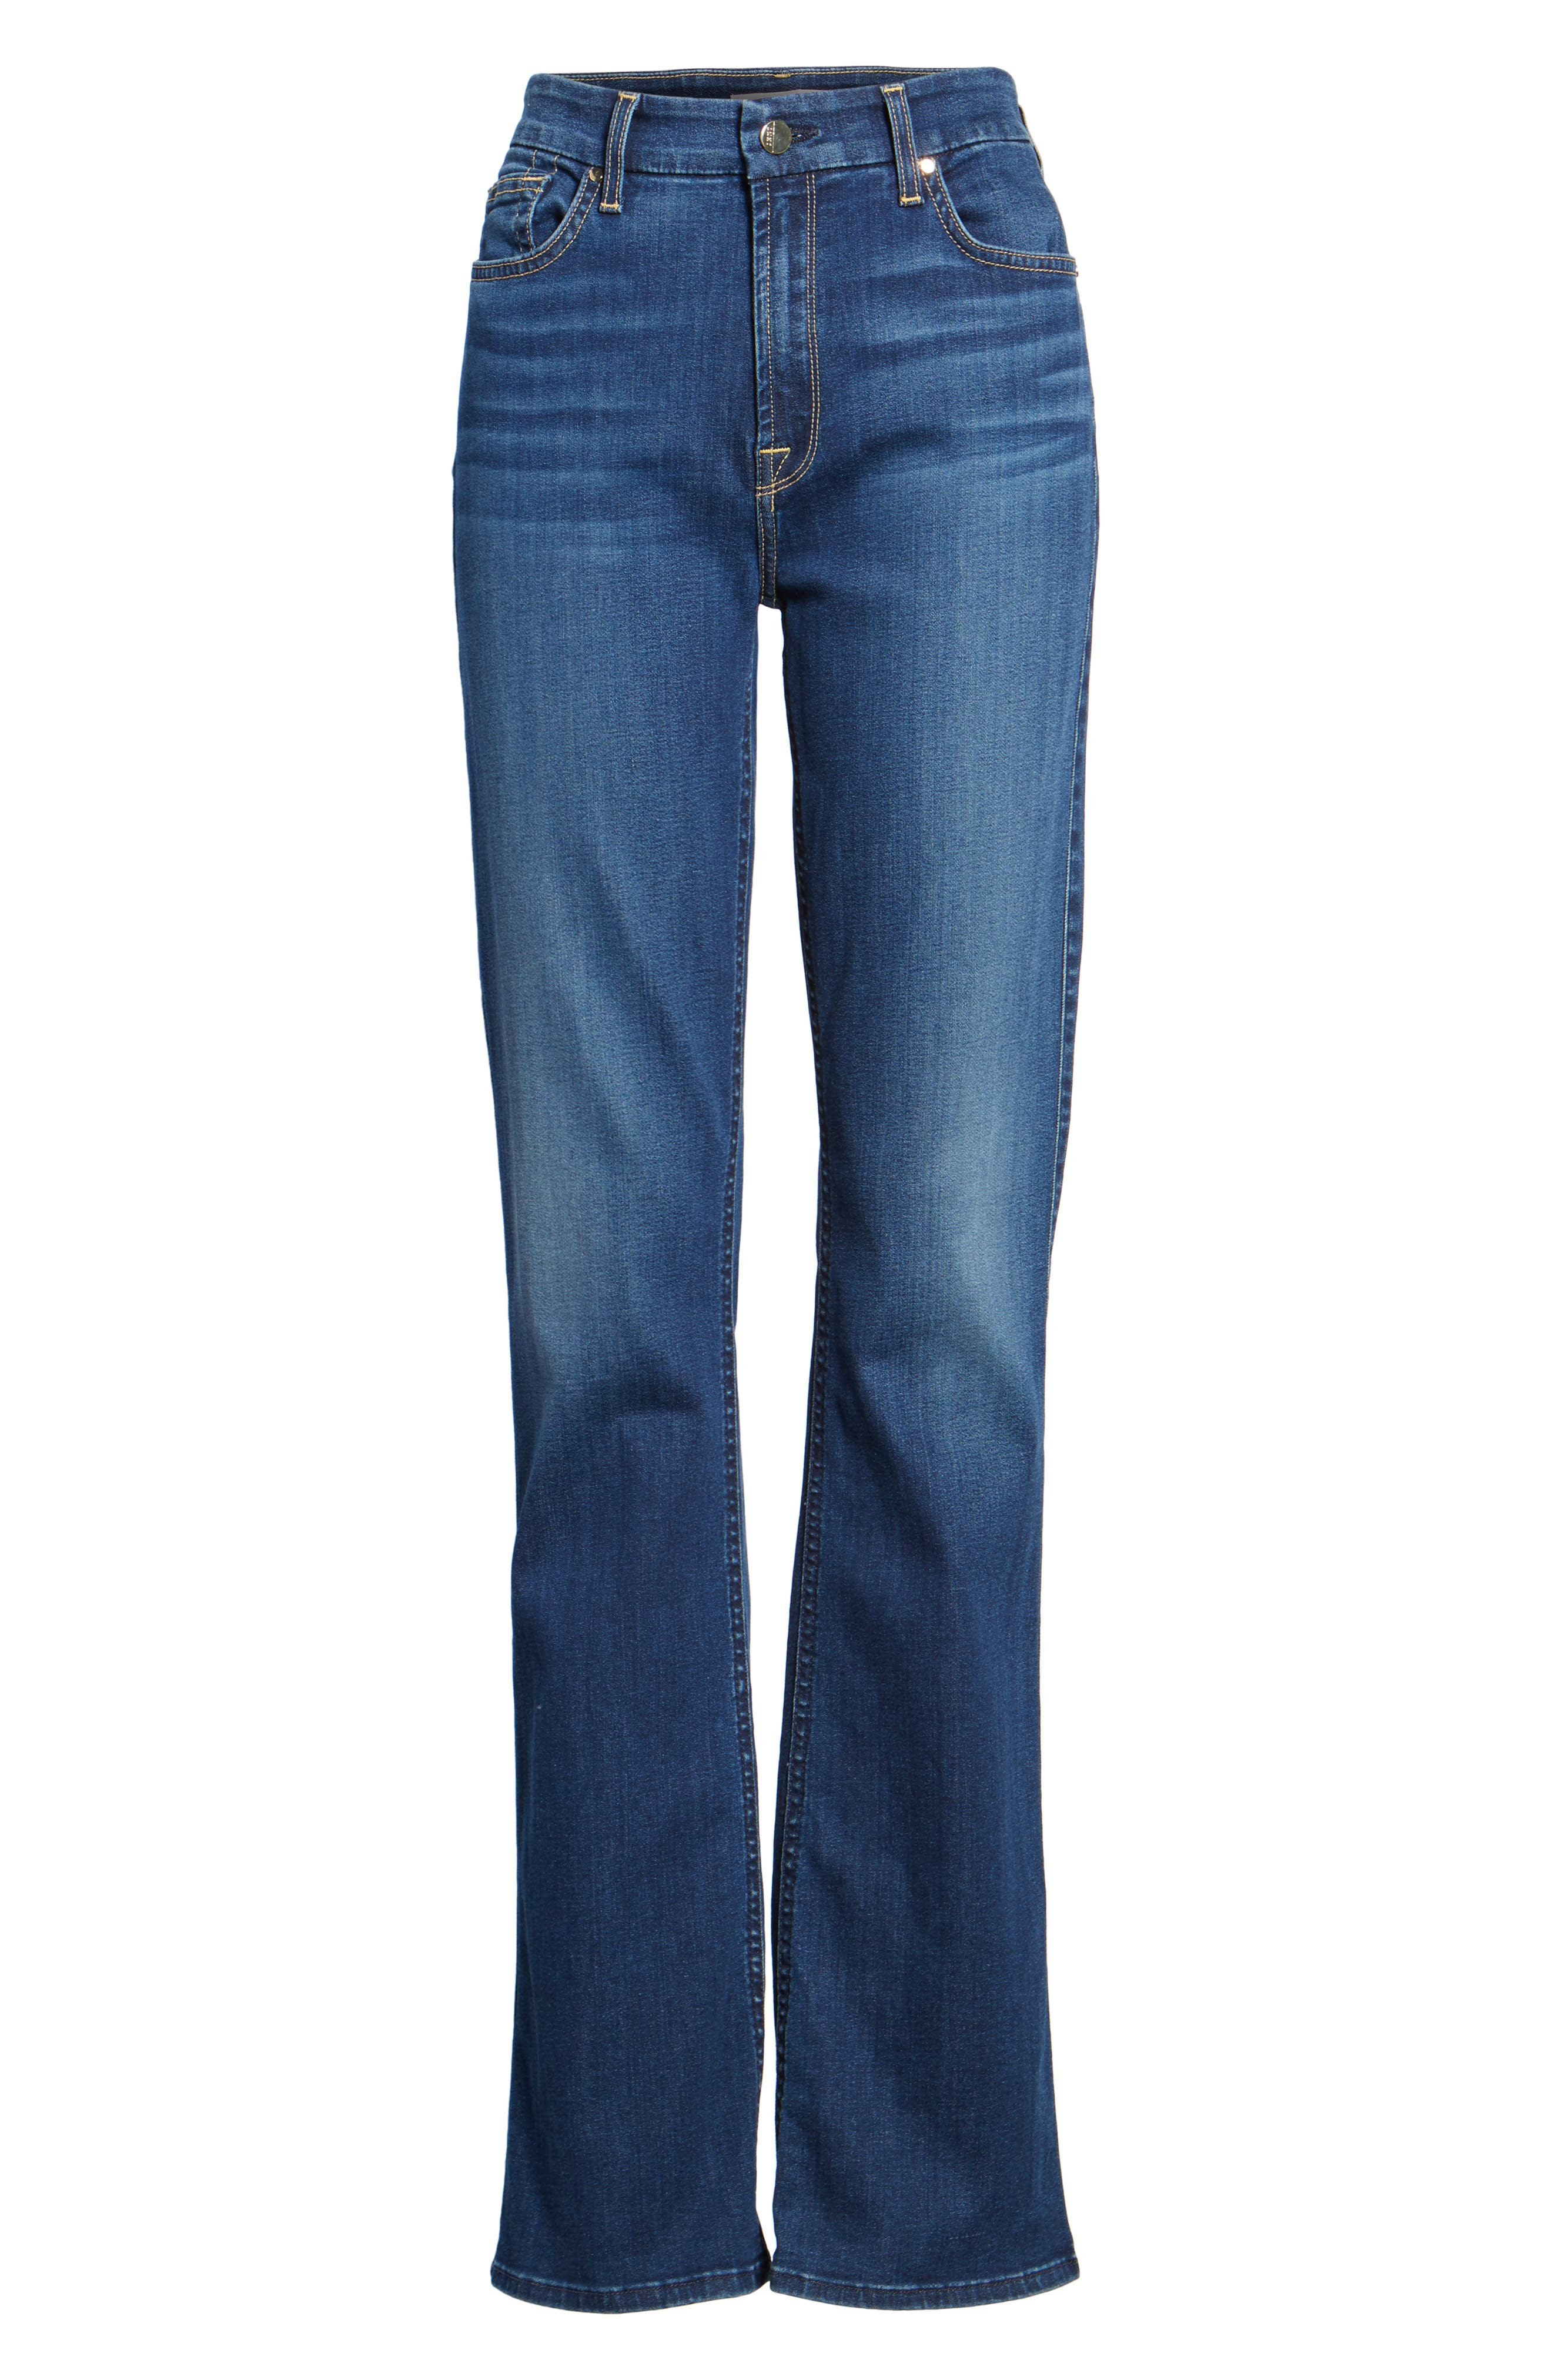 JEN7 BY 7 FOR ALL MANKIND, Slim Bootcut Jeans, Alternate thumbnail 6, color, RICHE TOUCH MEDIUM BLUE